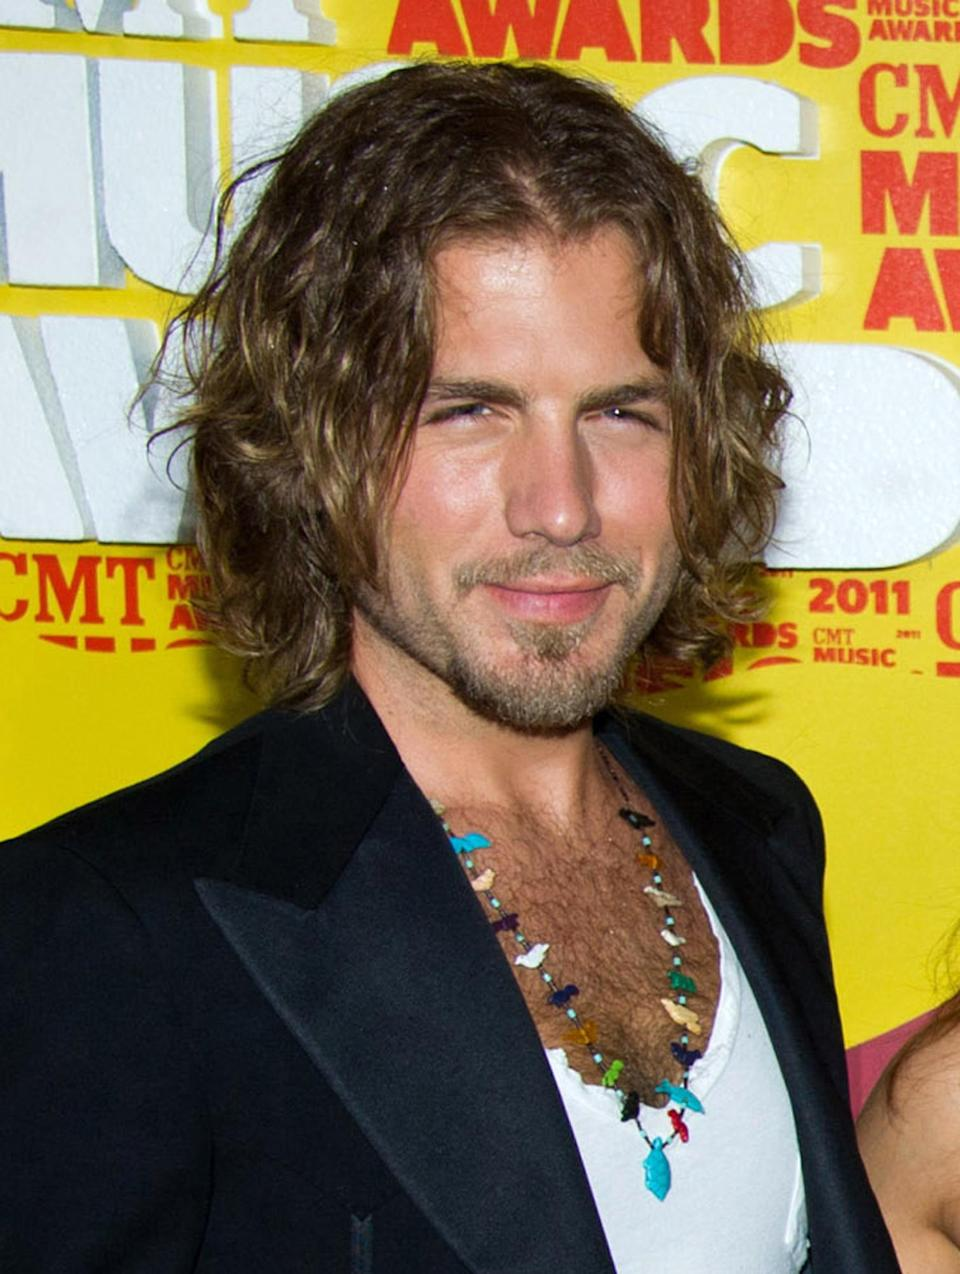 FILE - In this June 8, 2011 file photo, Tom Gossin of the band Gloriana arrives at the 2011 CMT Music Awards in Nashville, Tenn. Gossin is engaged to long-time girlfriend Jamie Moffett. He proposed on March 1.  (AP Photo/Charles Sykes, file)